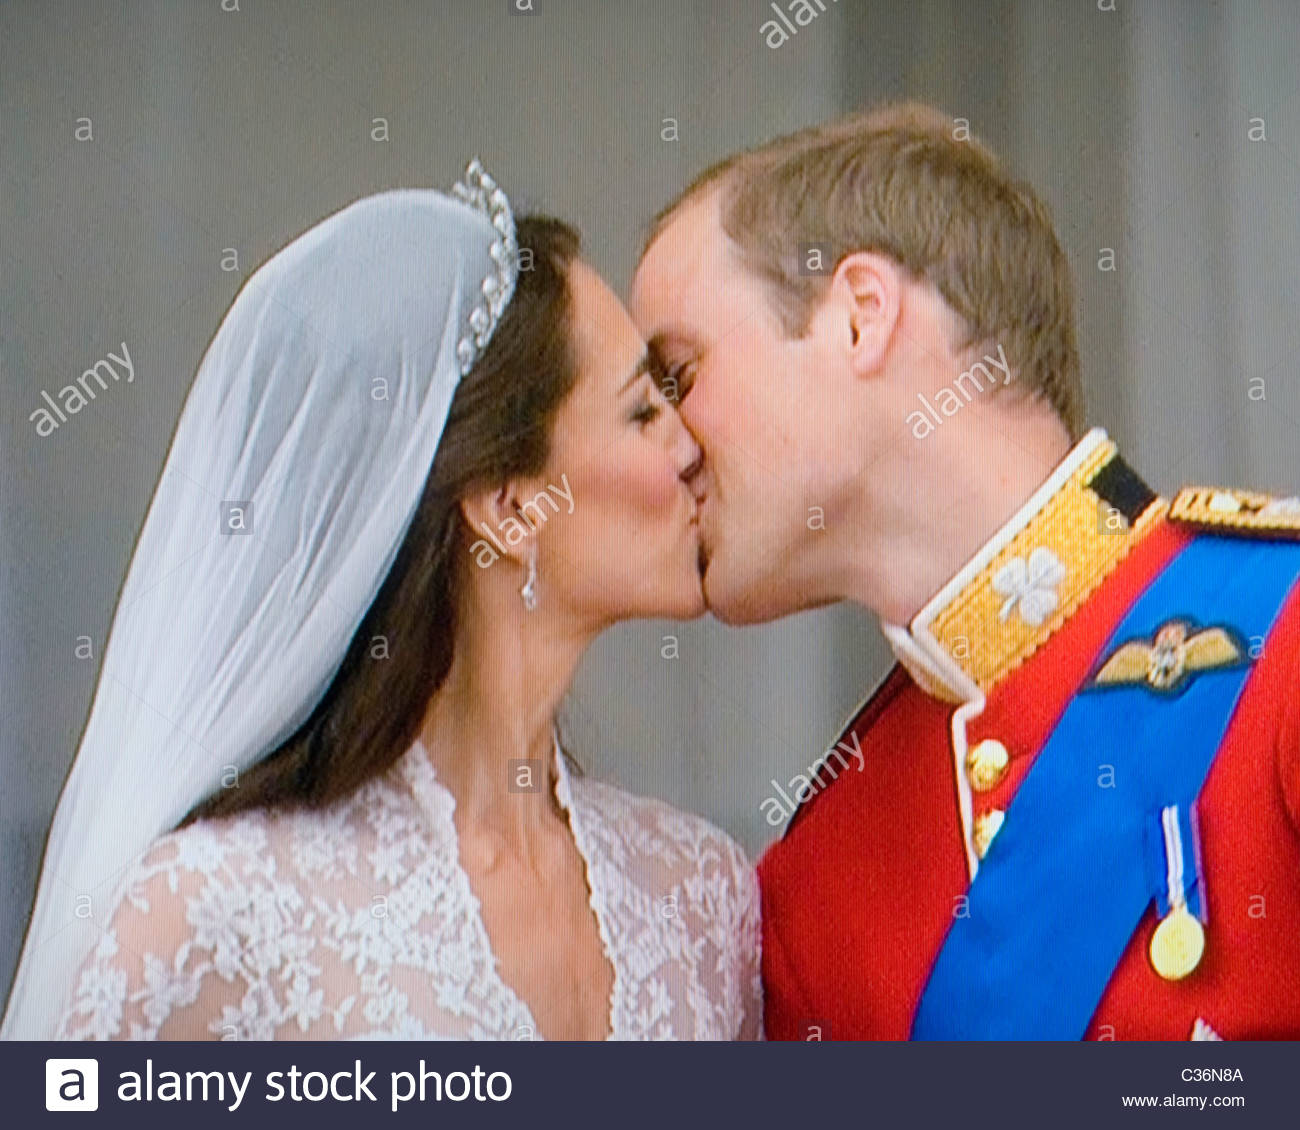 Prince William and Catherine Middleton kiss on Balcony of Buckingham Palace after their wedding on 29th April, 2011 - Stock Image